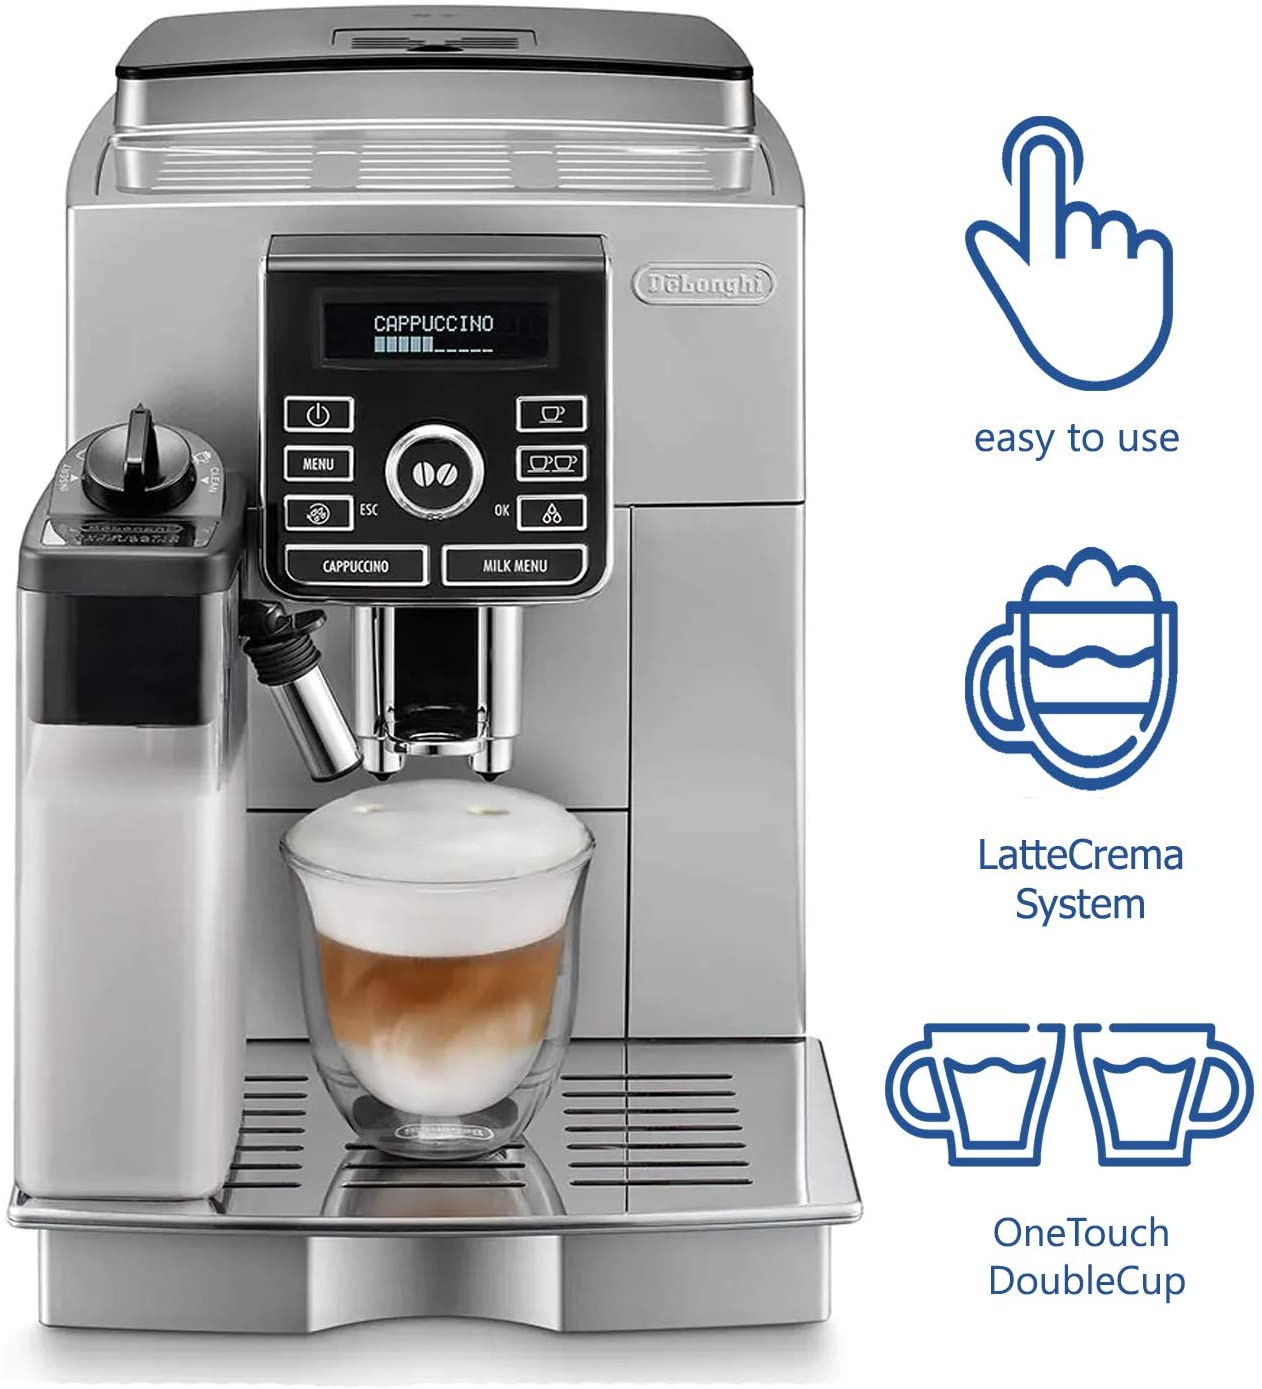 DeLonghi Digital Super Automatic – ECAM25462S